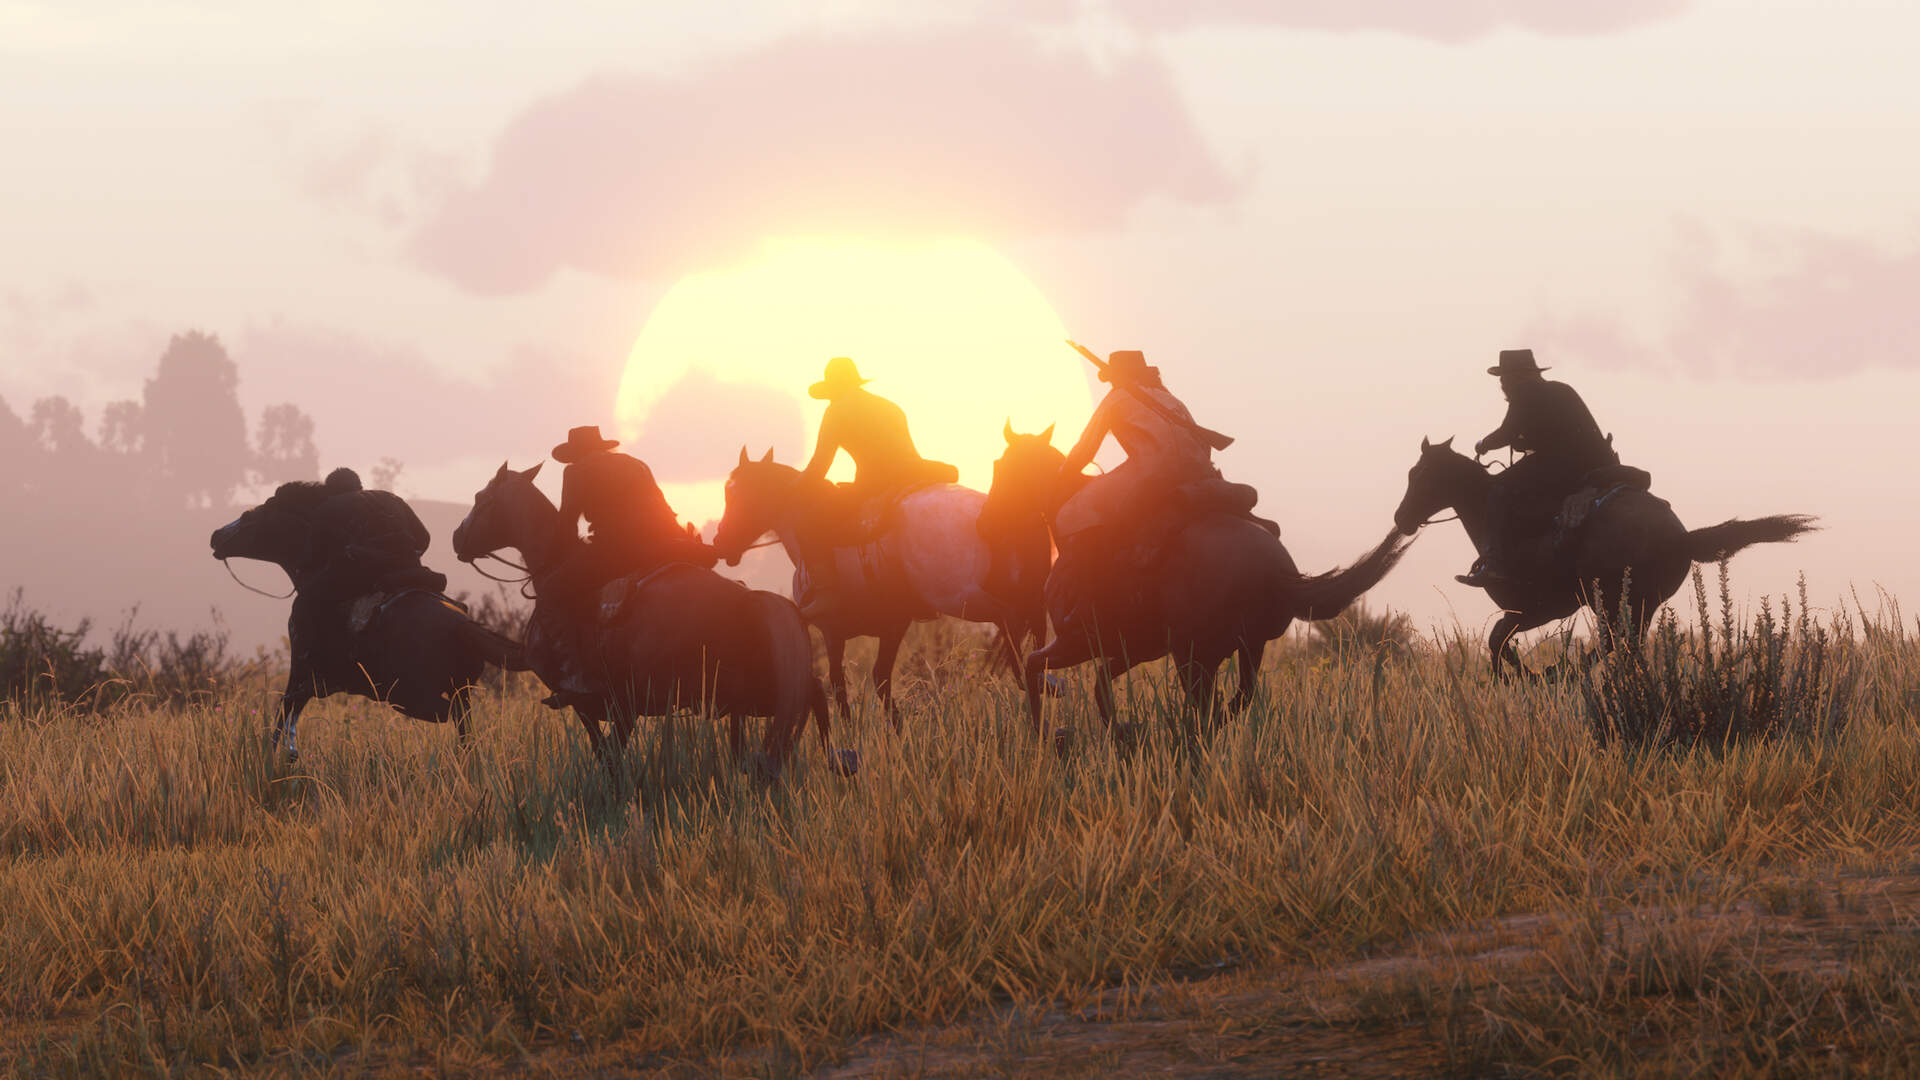 Zombies May Be Appearing in Red Dead Online, If It's Not a Glitch